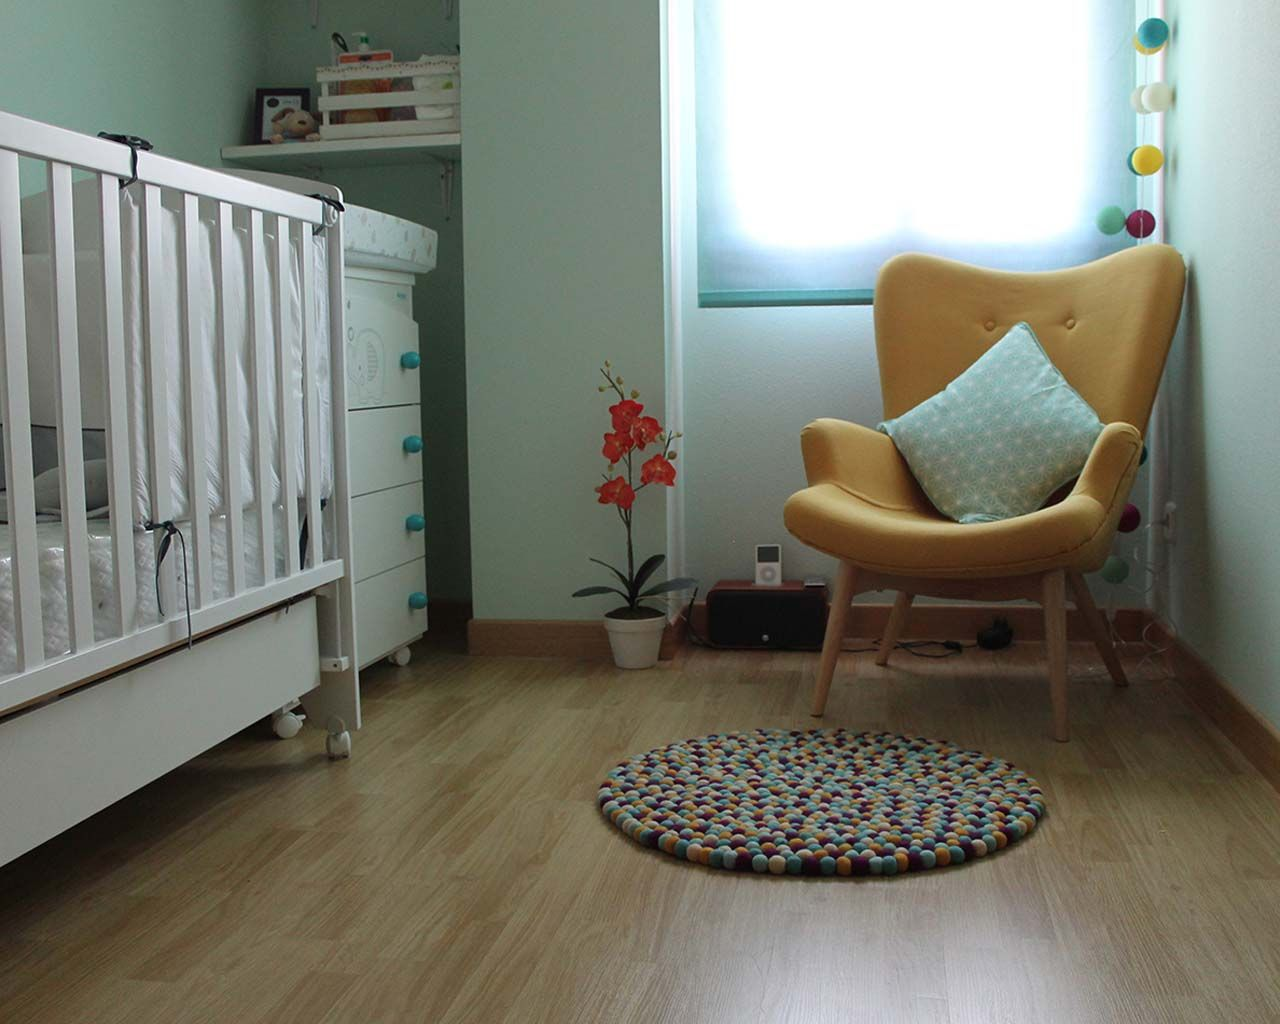 woolen chair cabinet and kids bed nepalese modern floor rugs